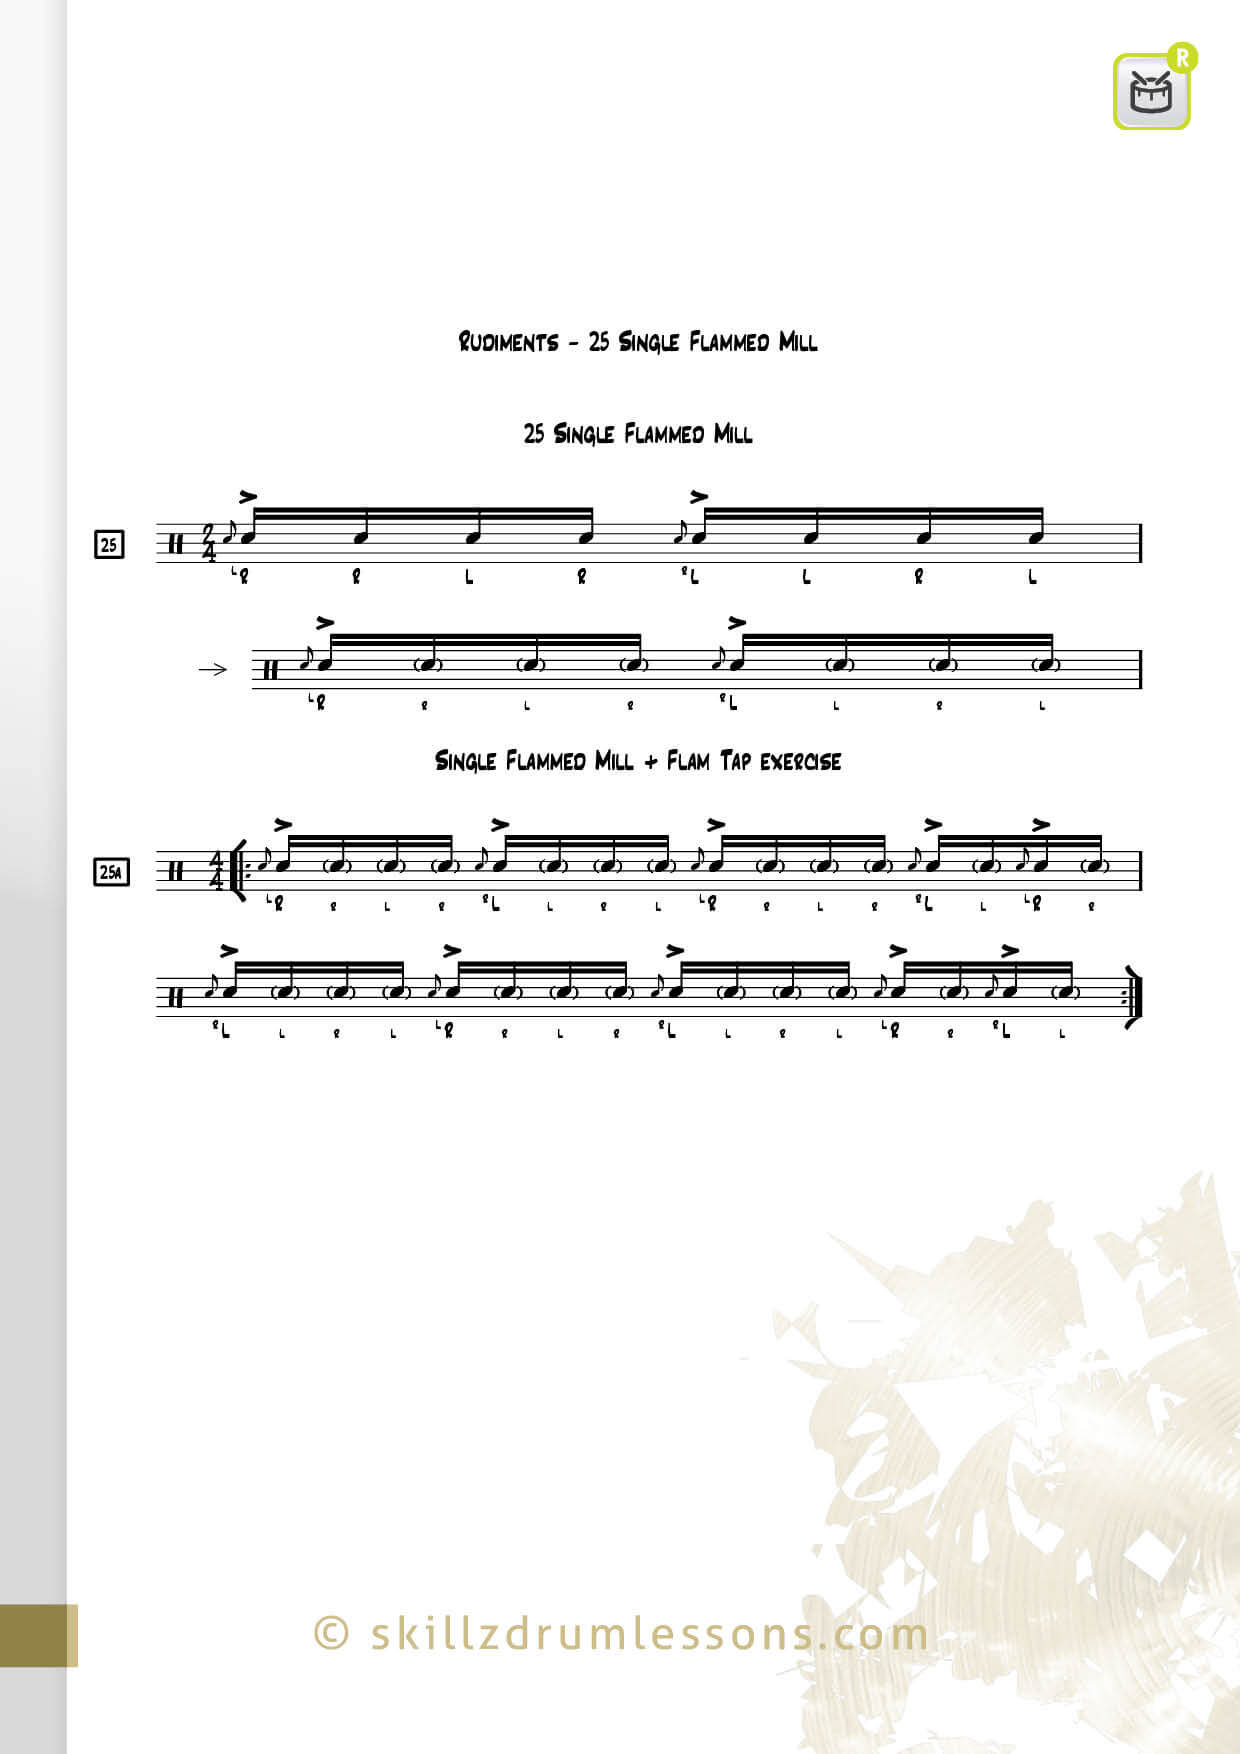 This is an image of the Official 40 Essential P.A.S. Rudiments #25 The Single Flammed Mill by Skillz Drum Lessons